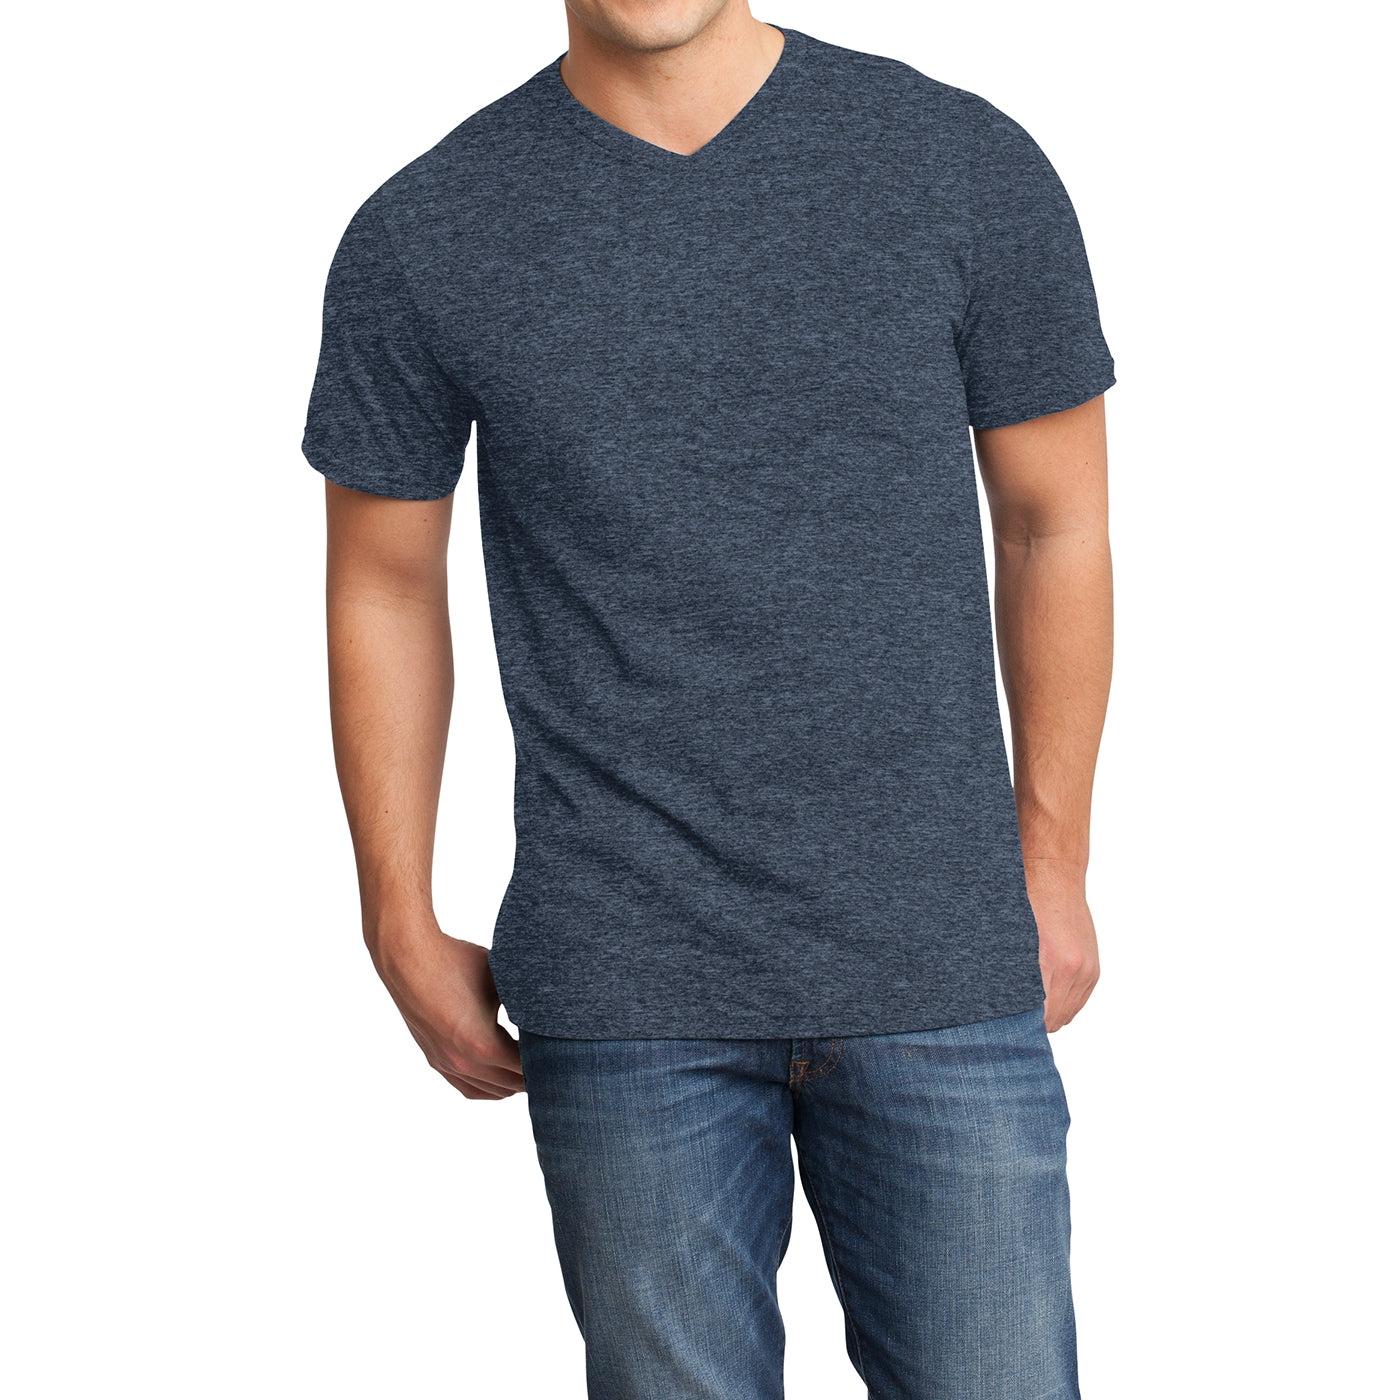 Men's Young  Very Important Tee V-Neck - Heathered Navy